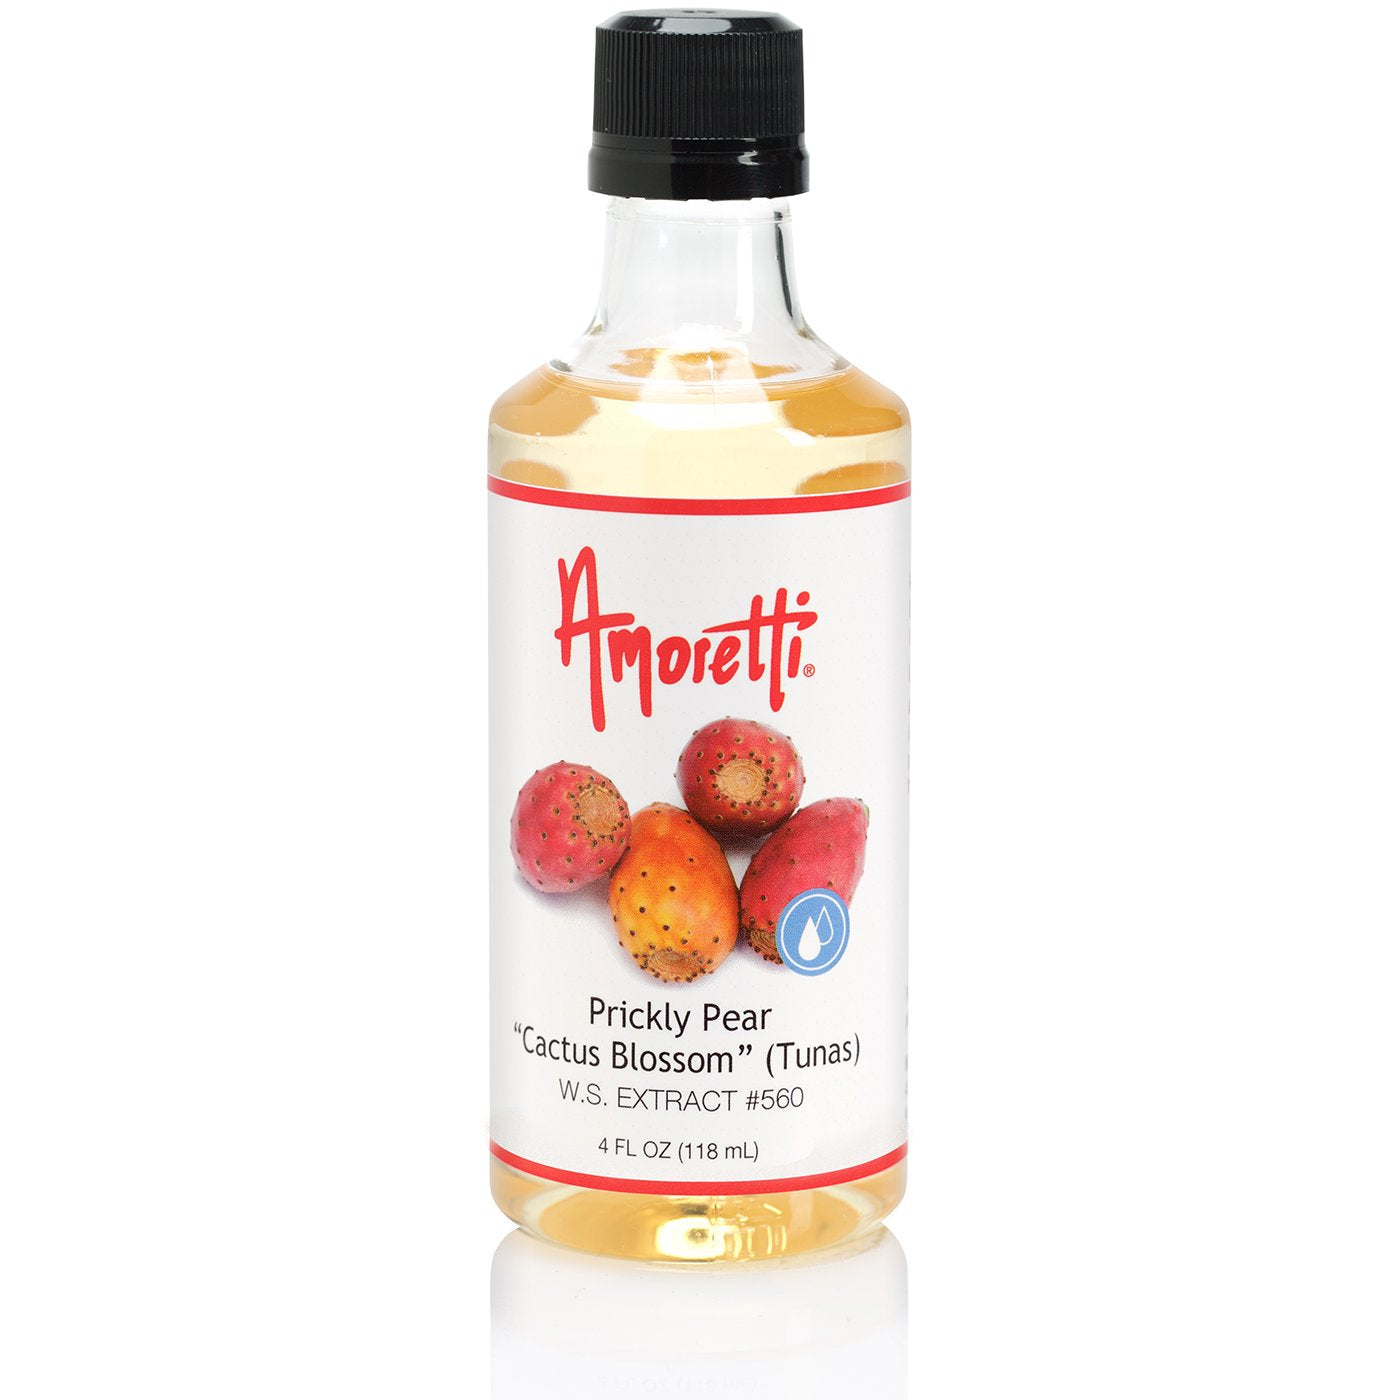 Amoretti Prickly Pear Cactus Blossom Extract W.S.